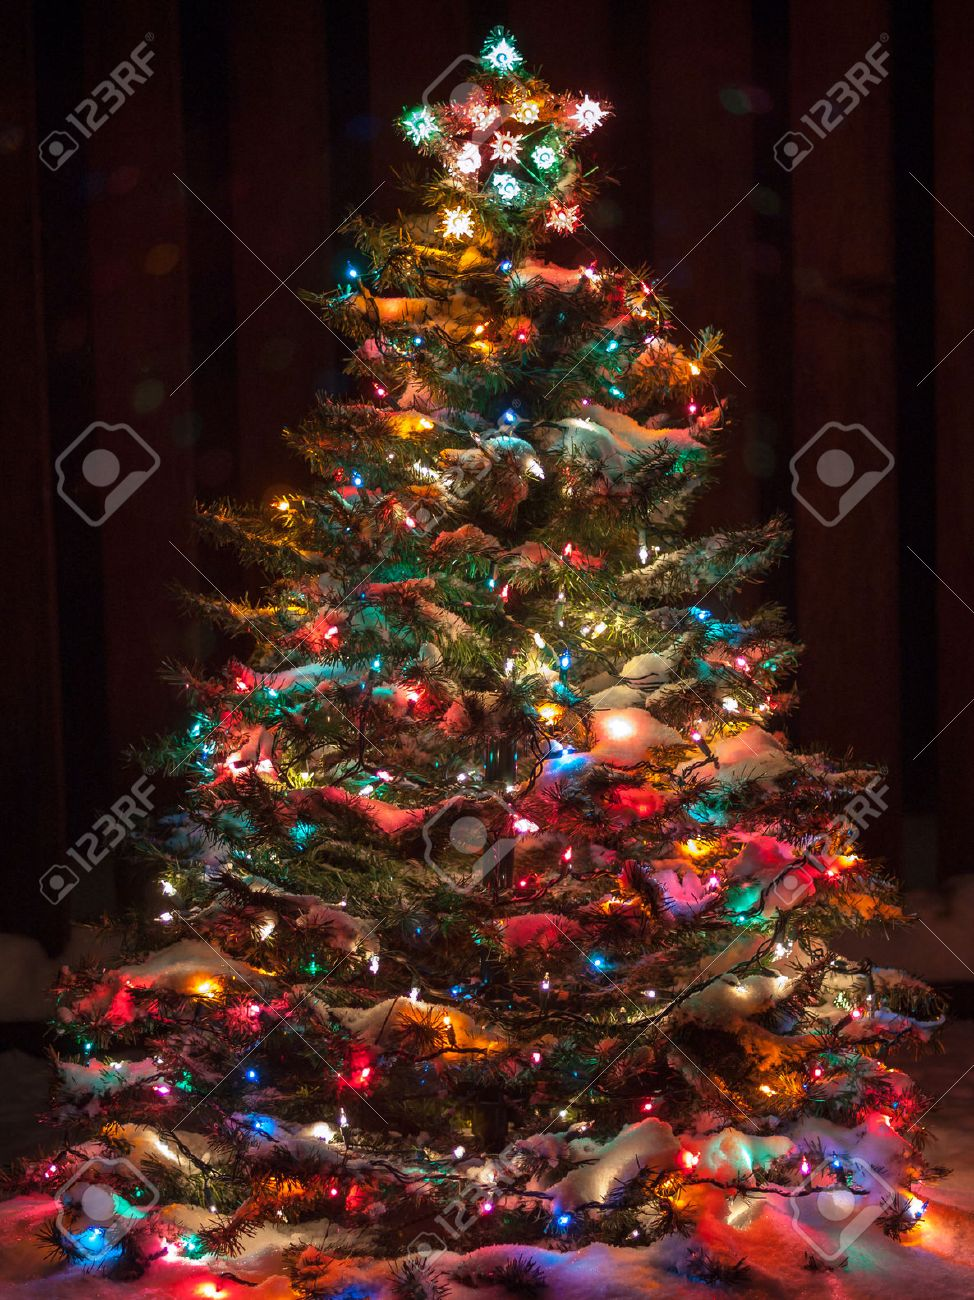 Snow Covered Christmas Tree With Multi Colored Lights Stock Photo